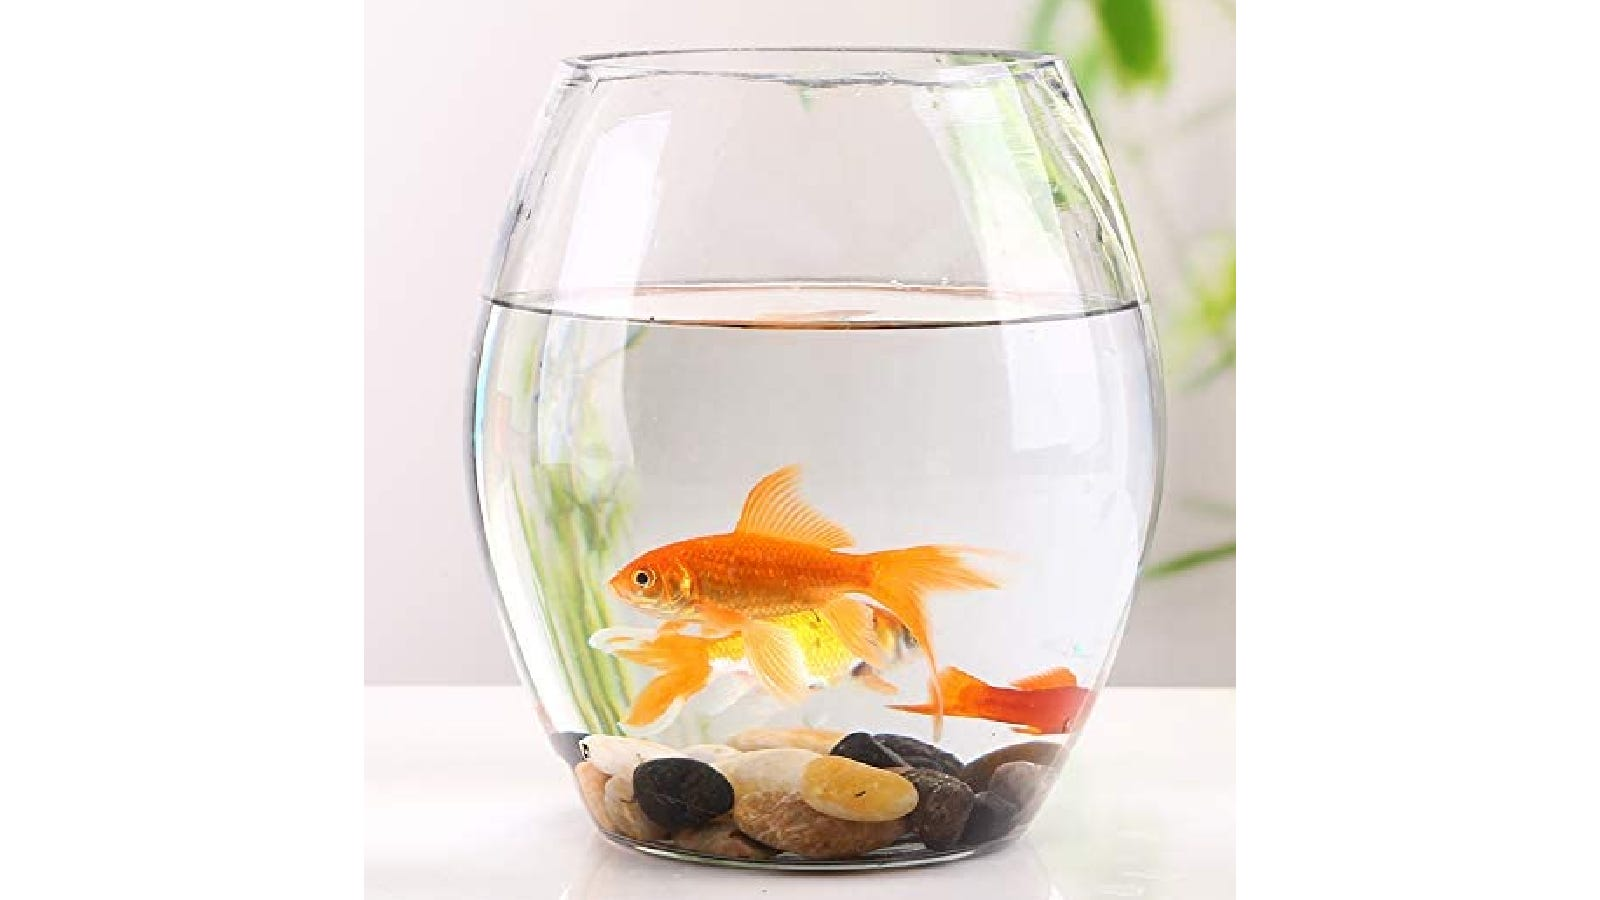 small aquarium filled with goldfish and brown gravel on the bottom of the tank